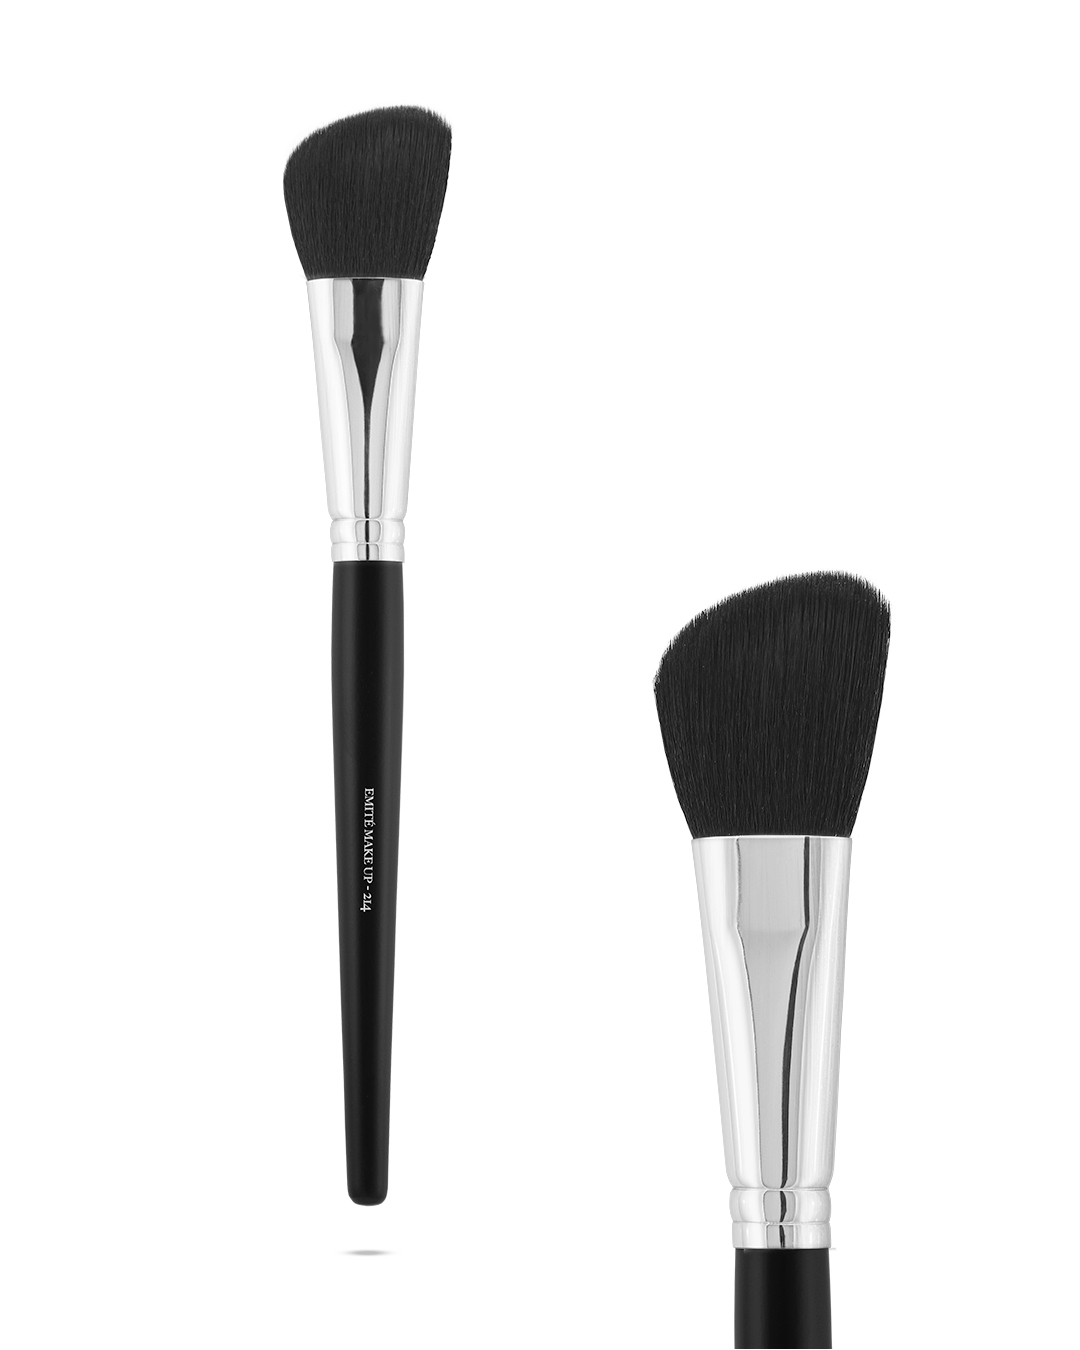 SLANTED POWDER BLUSH BRUSH 214